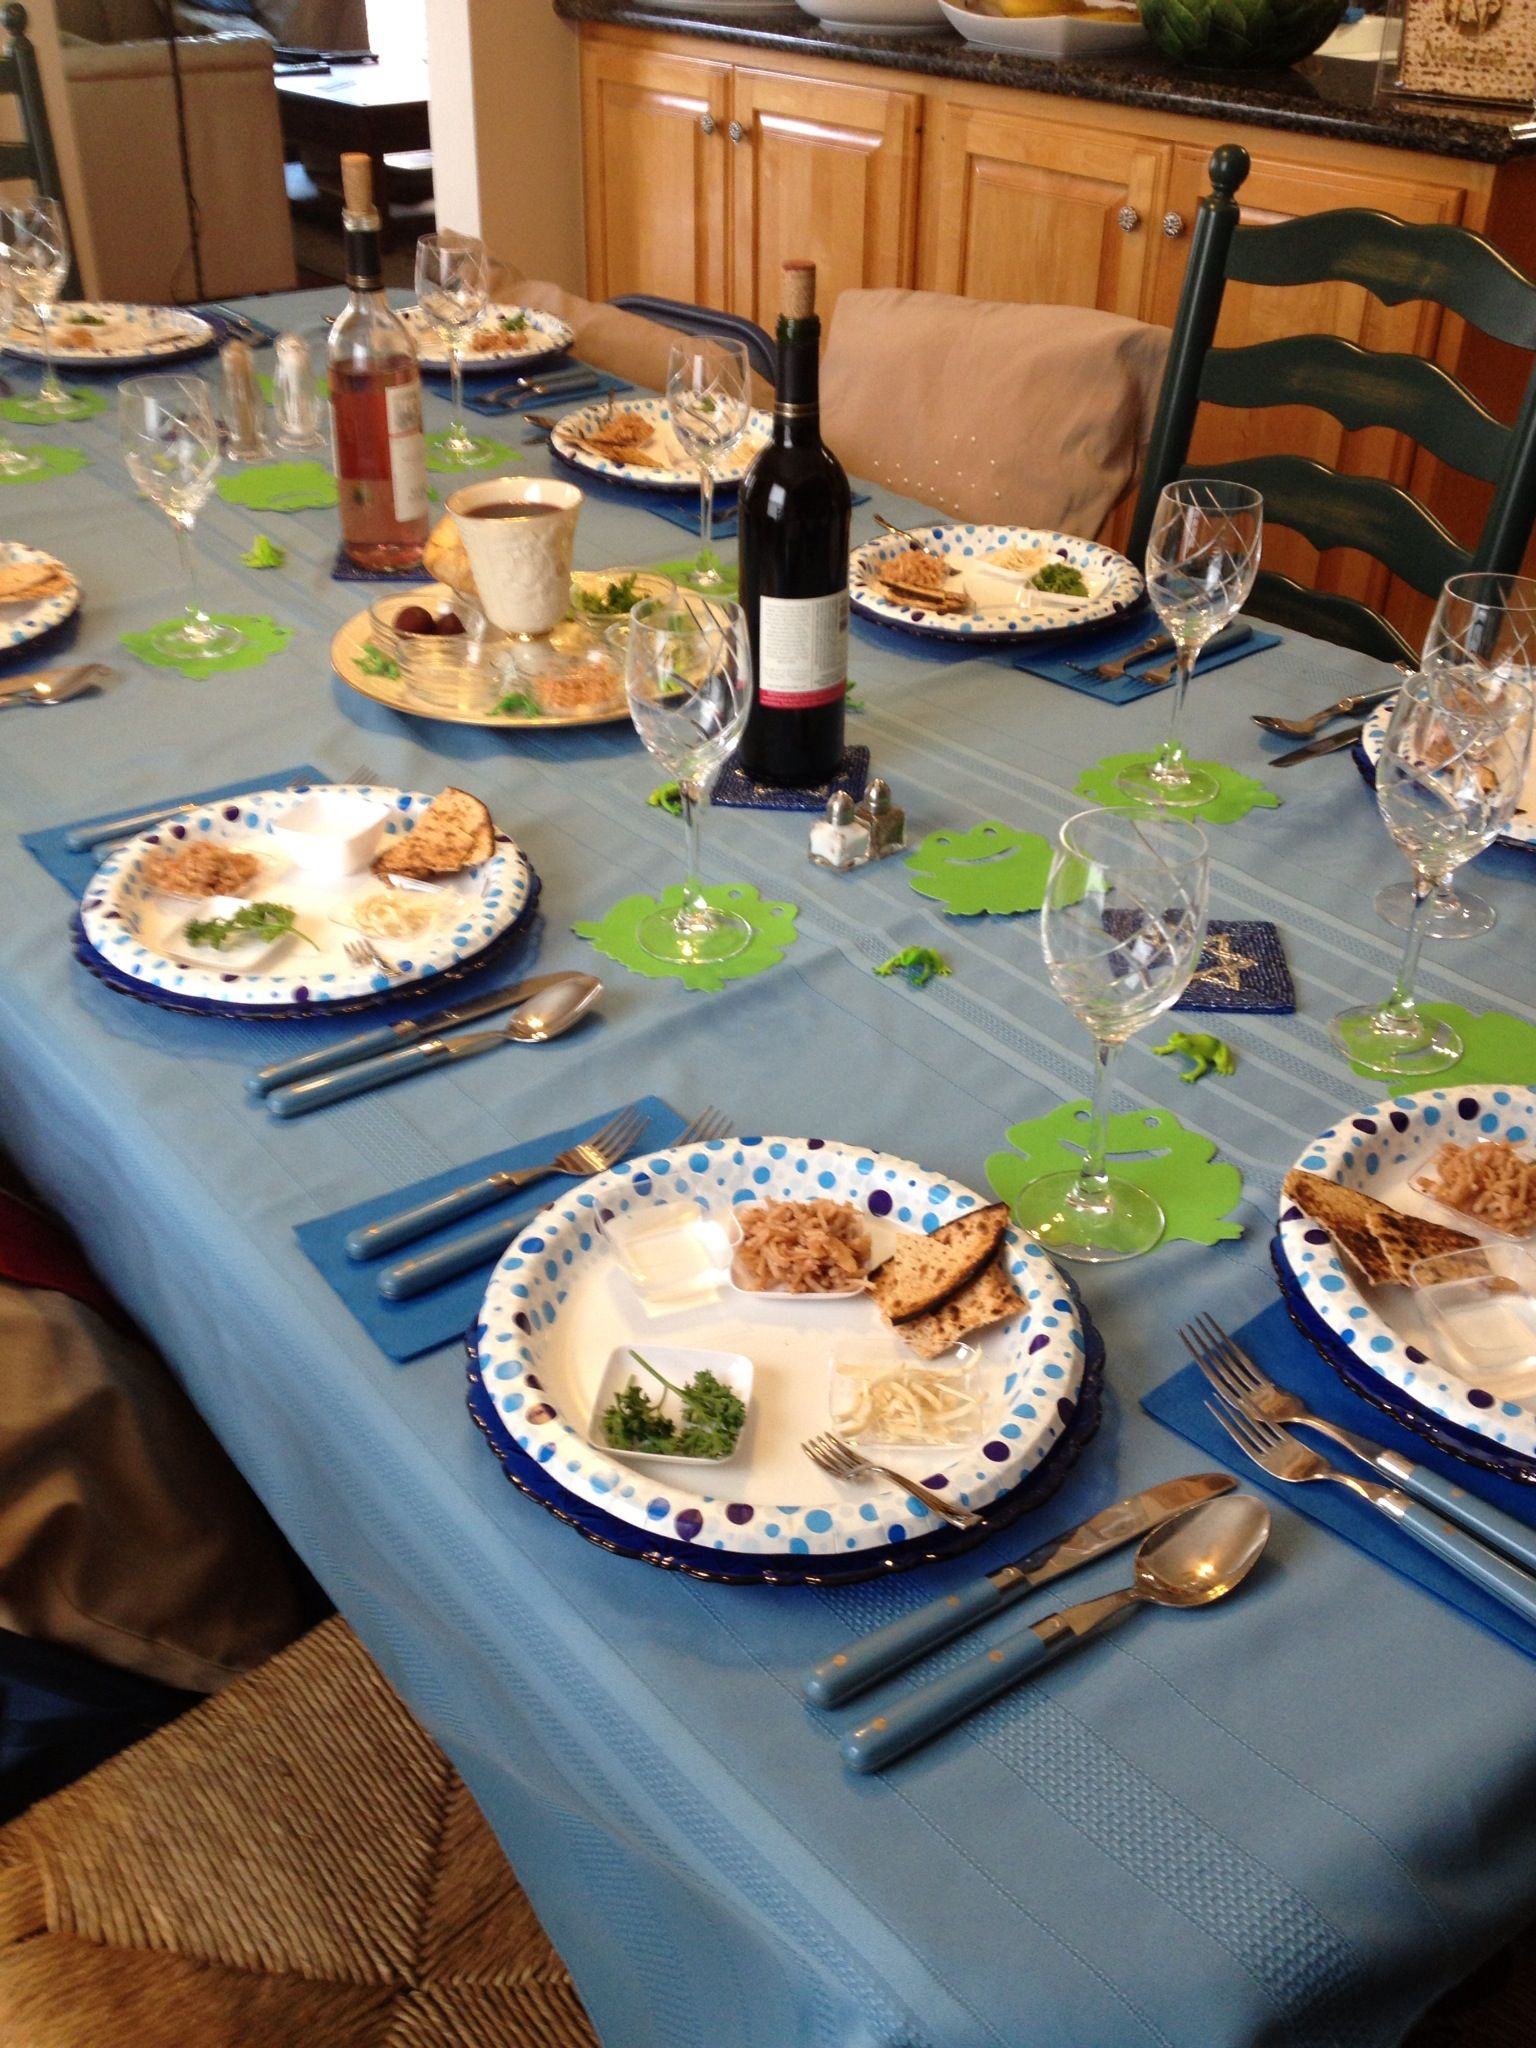 My Passover table -2013 Plague theme frogs | Passover ...